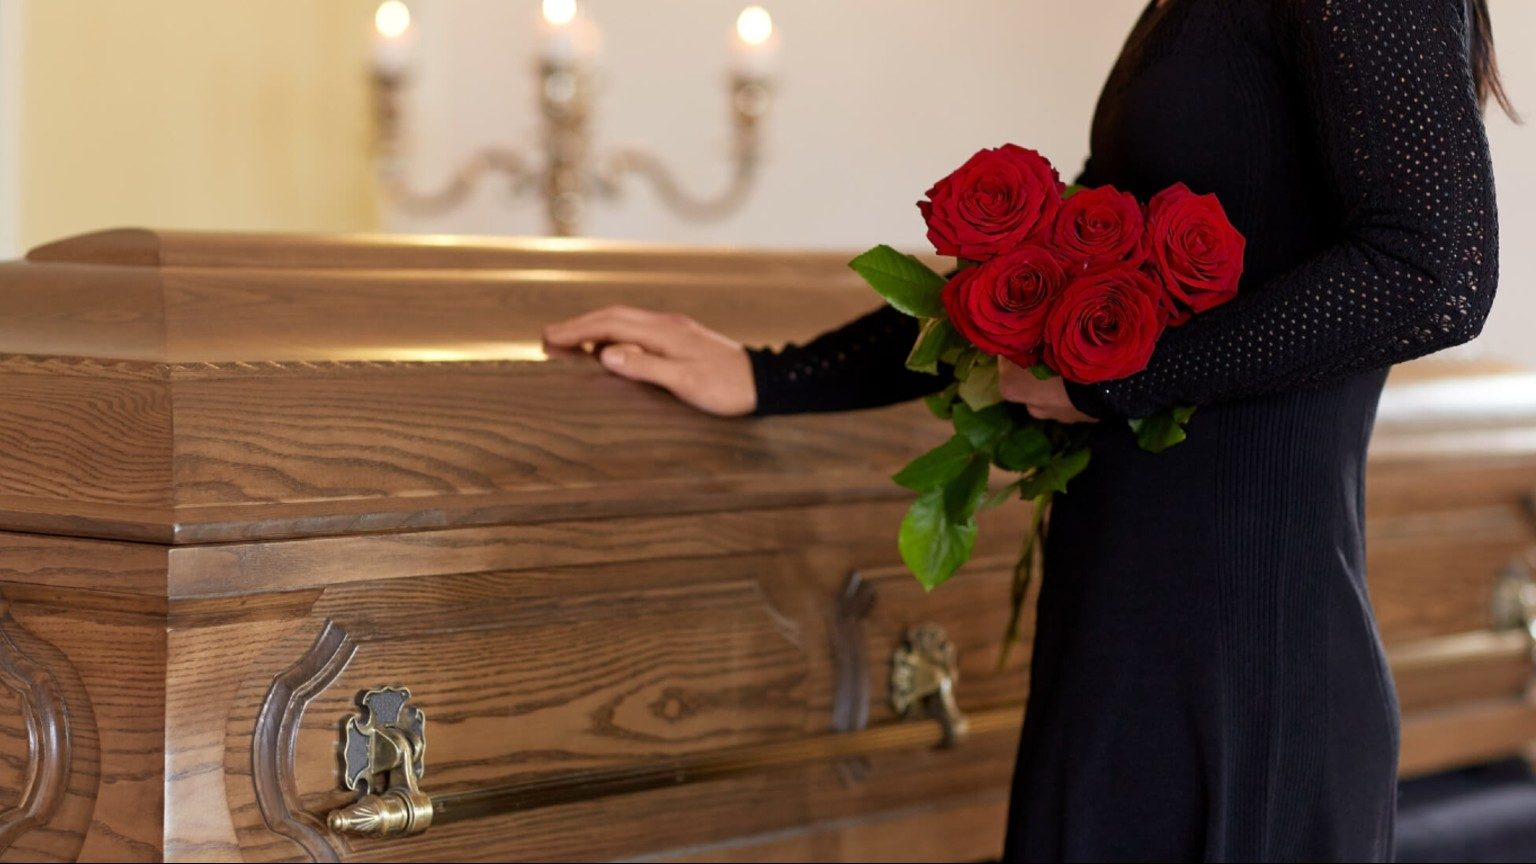 Woman dressed in black with roses touching a coffin